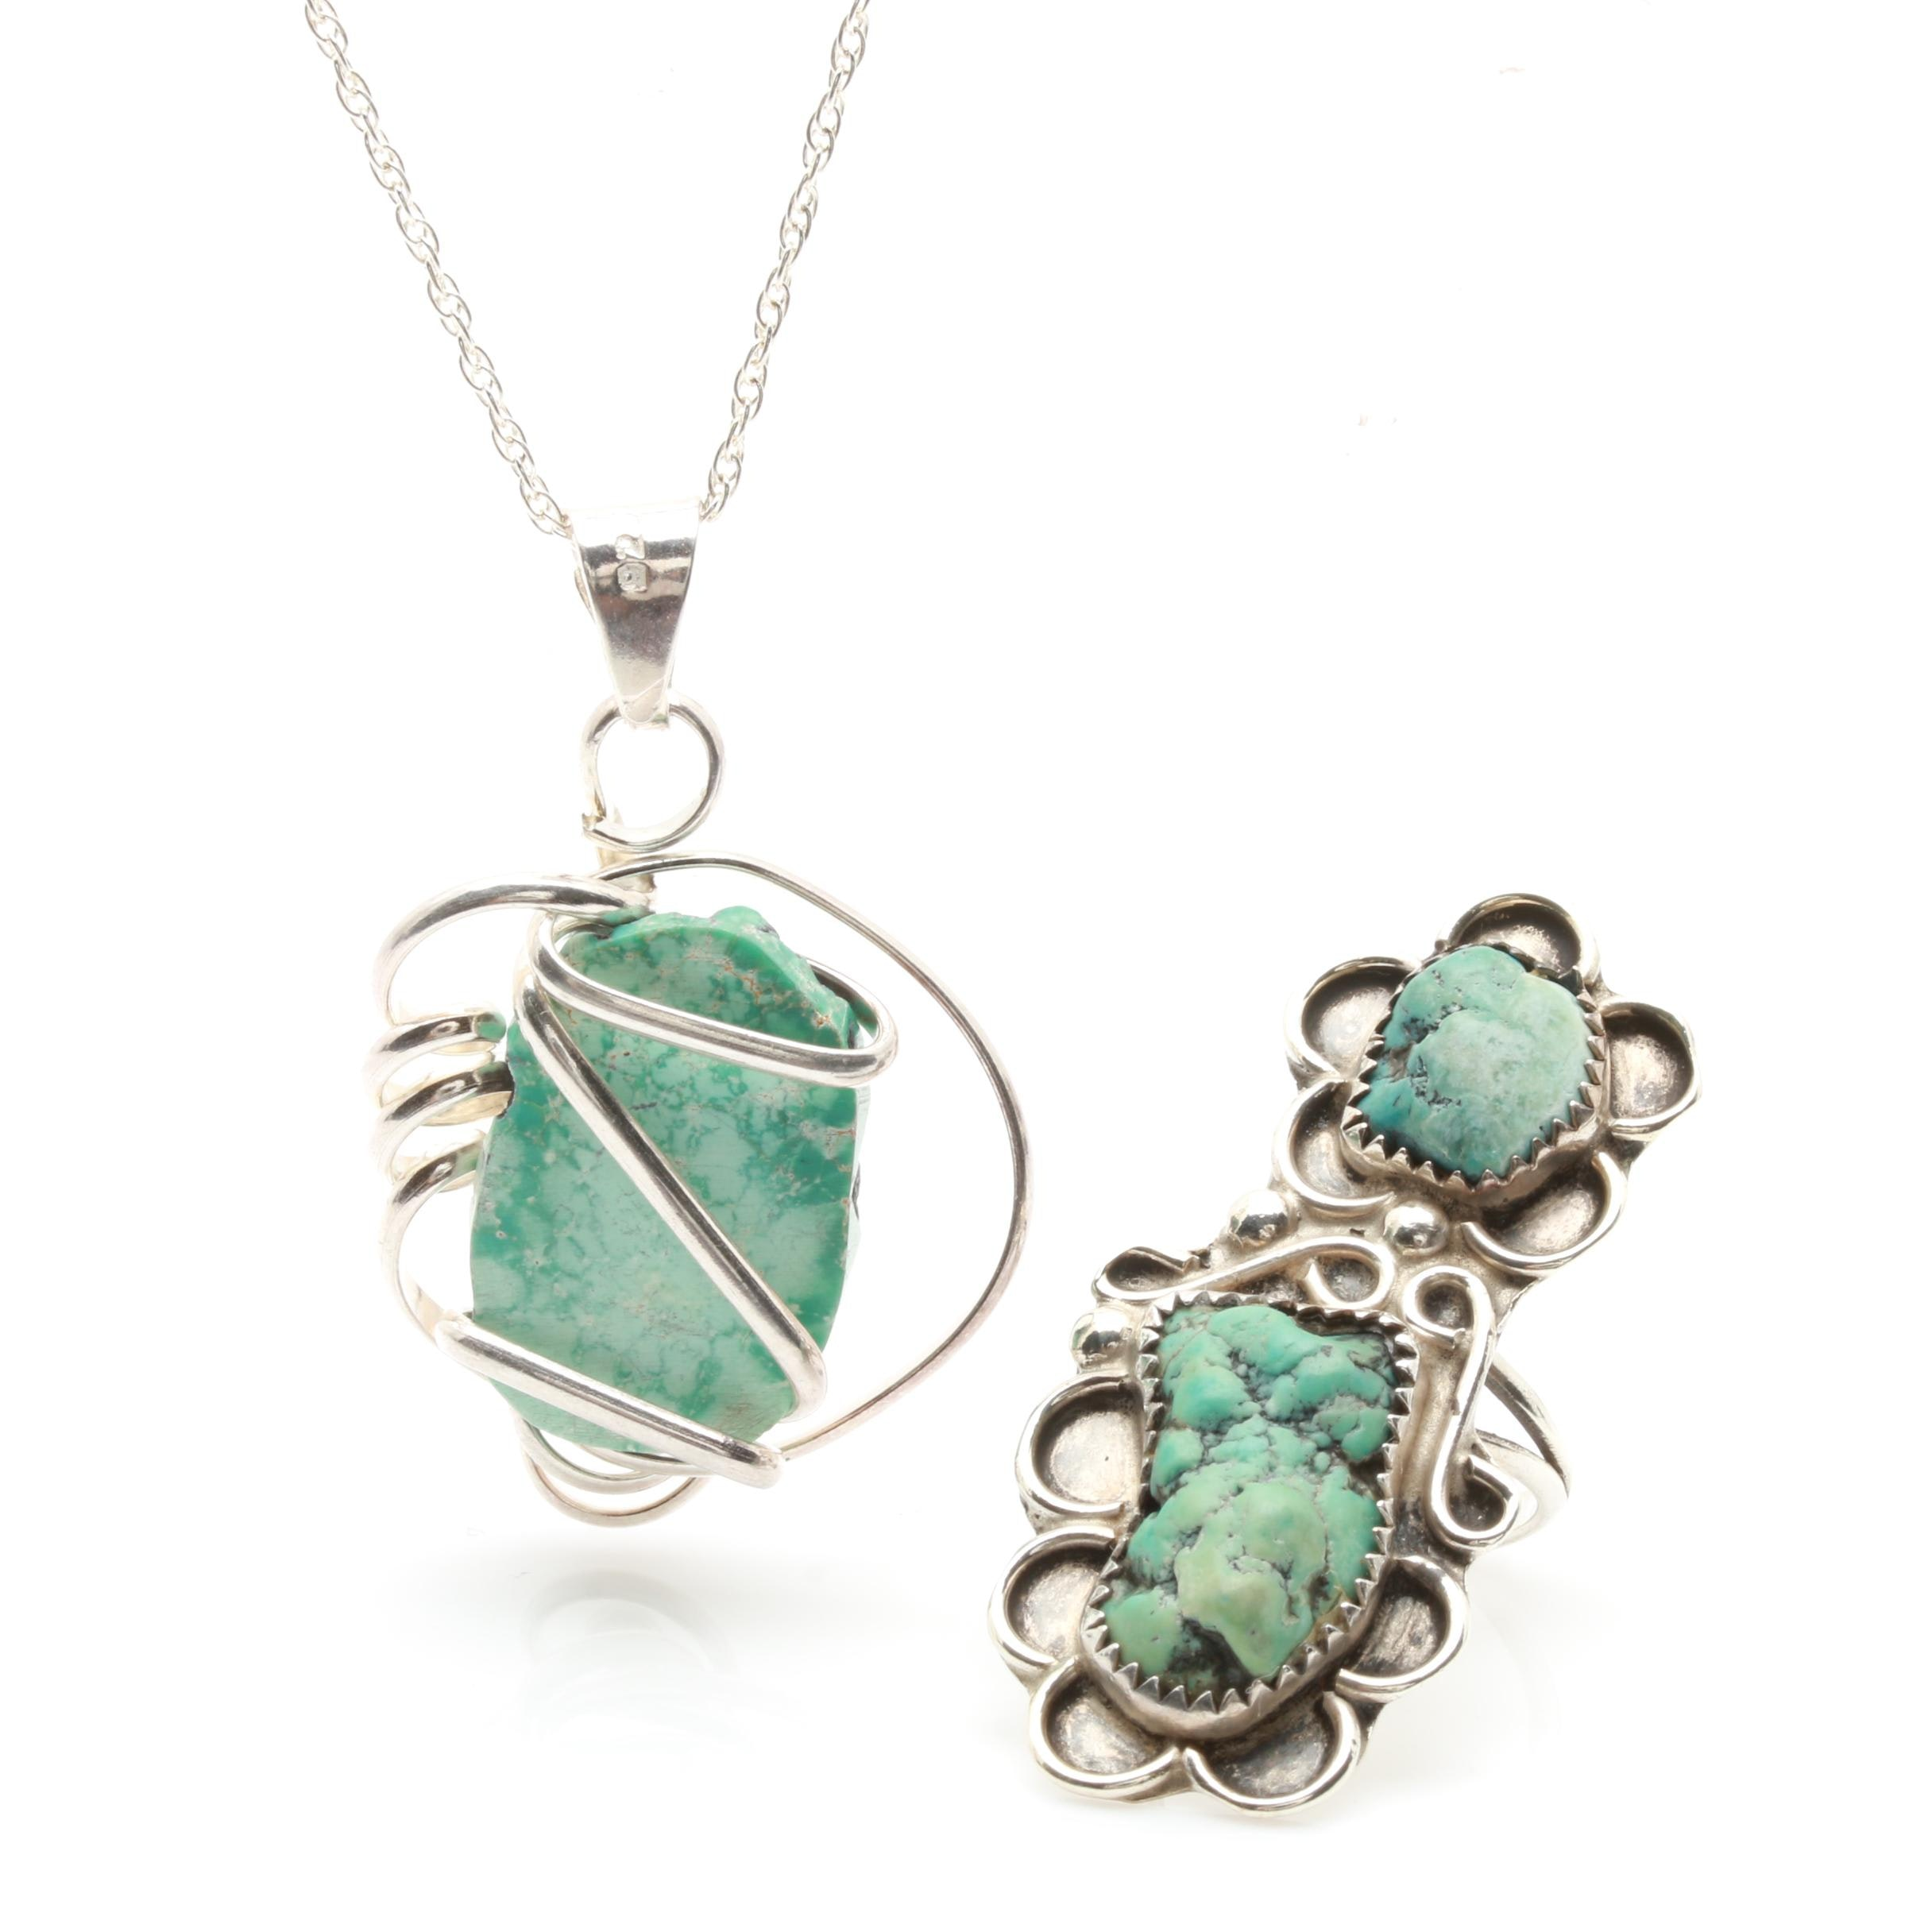 Southwestern Style Sterling Silver Magnesite and Turquoise Jewelry